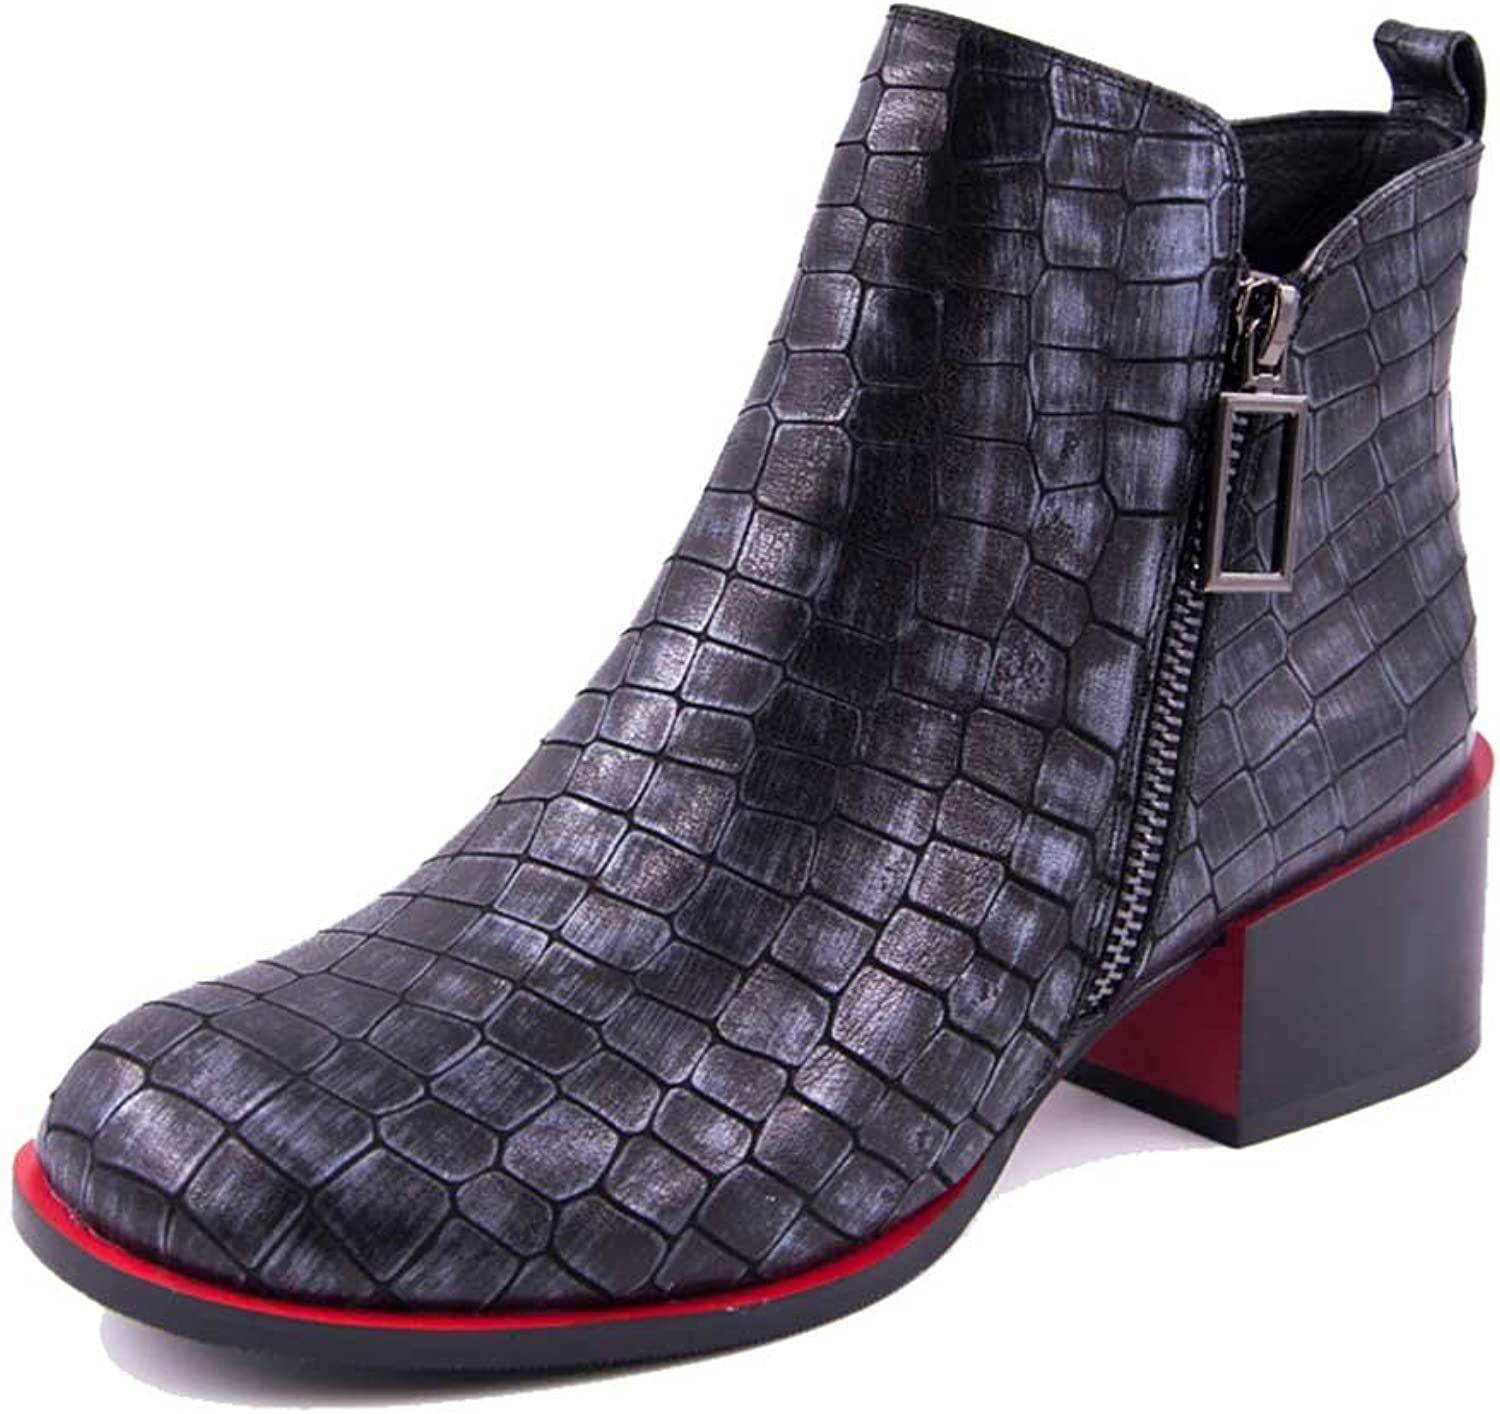 A-BUYBEA Women's Pebbled Croc Leather Low Heel Zipper Ankle Boots 5-8